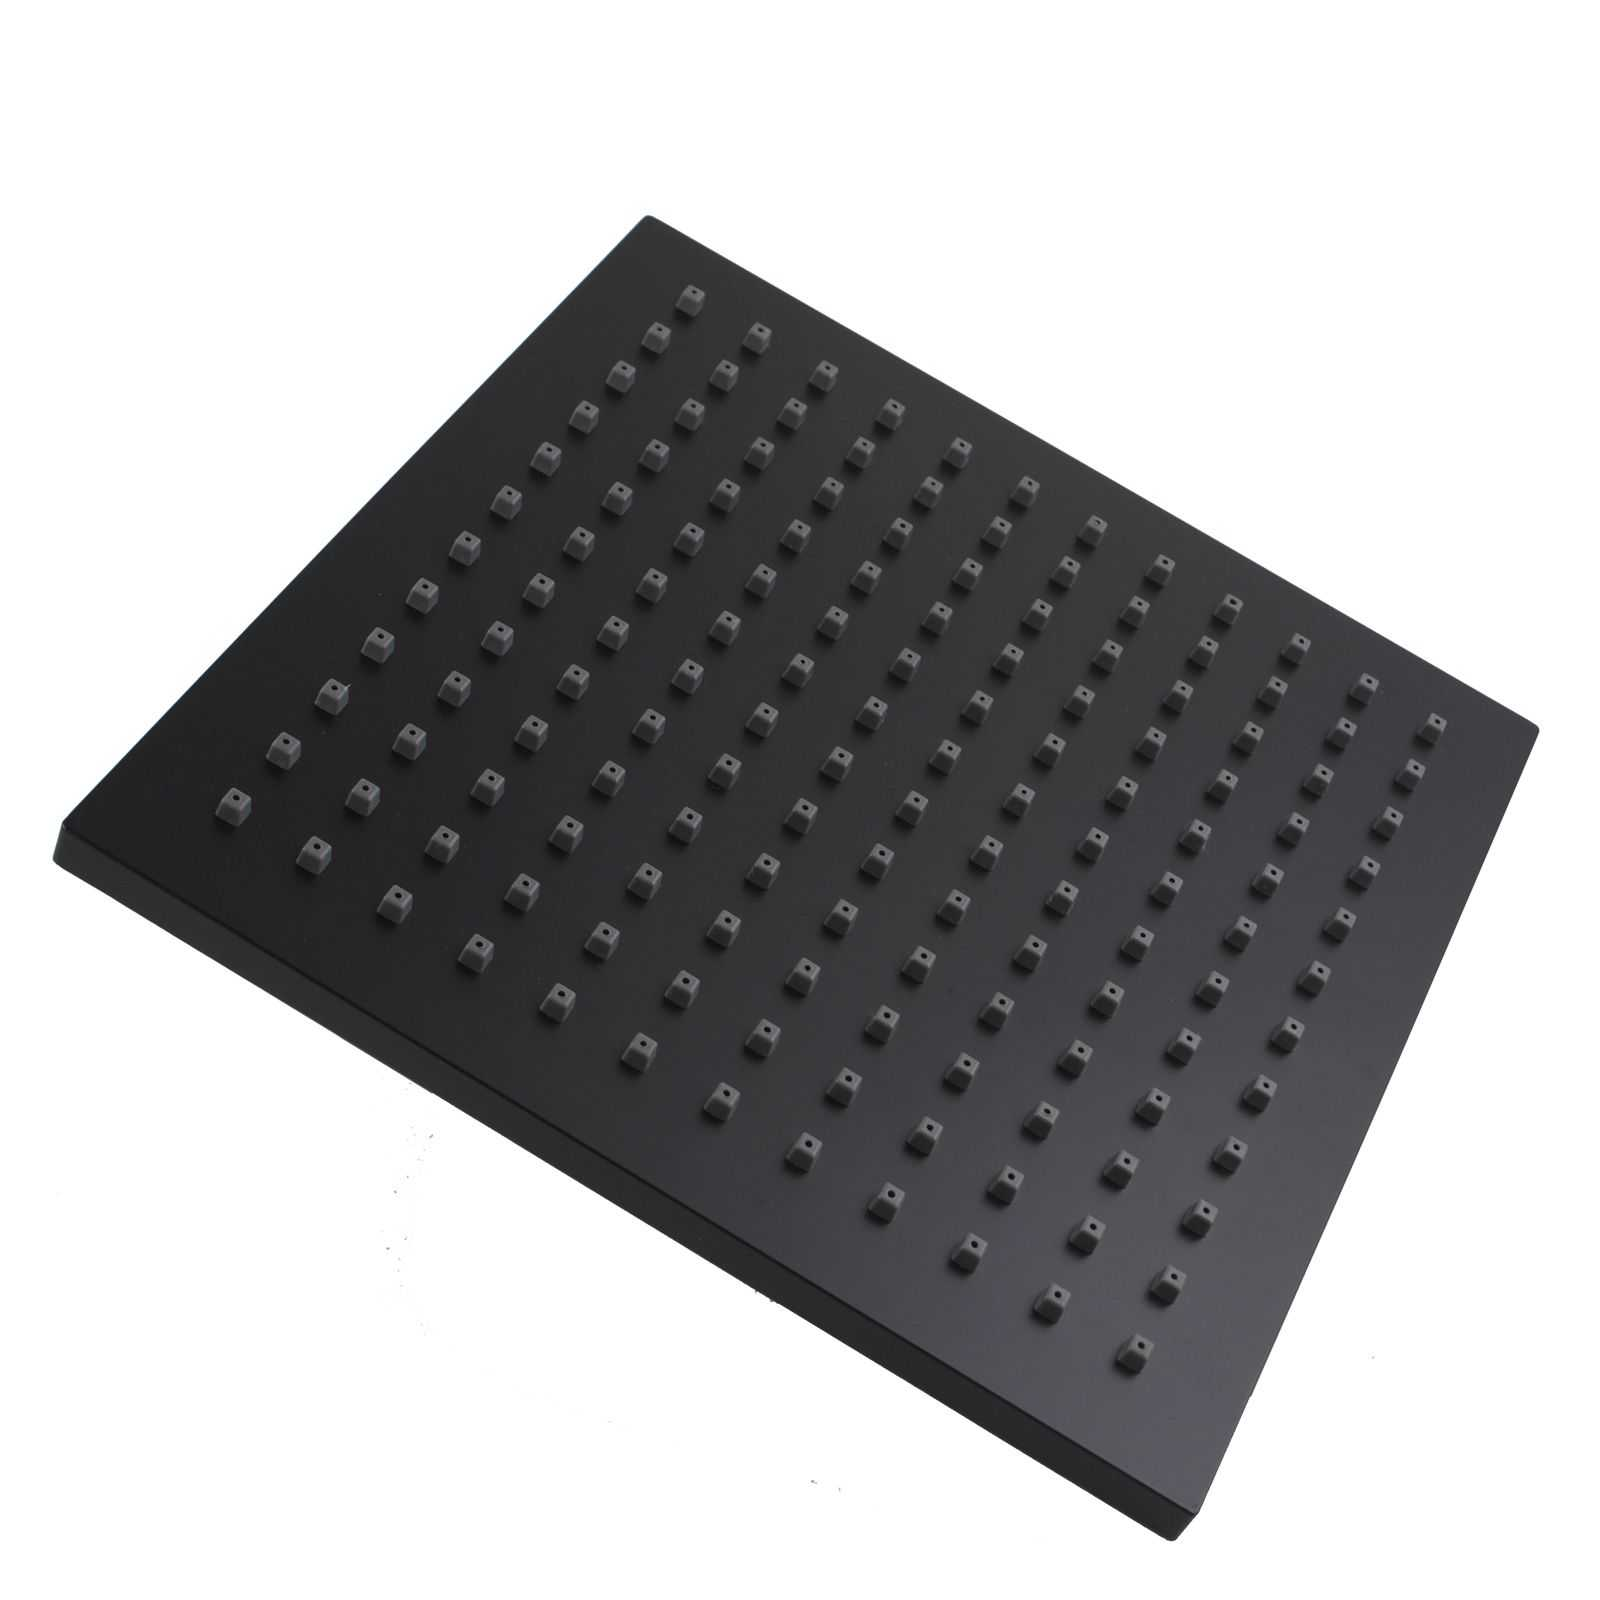 Square Black ABS Rainfall Shower Head 200mm